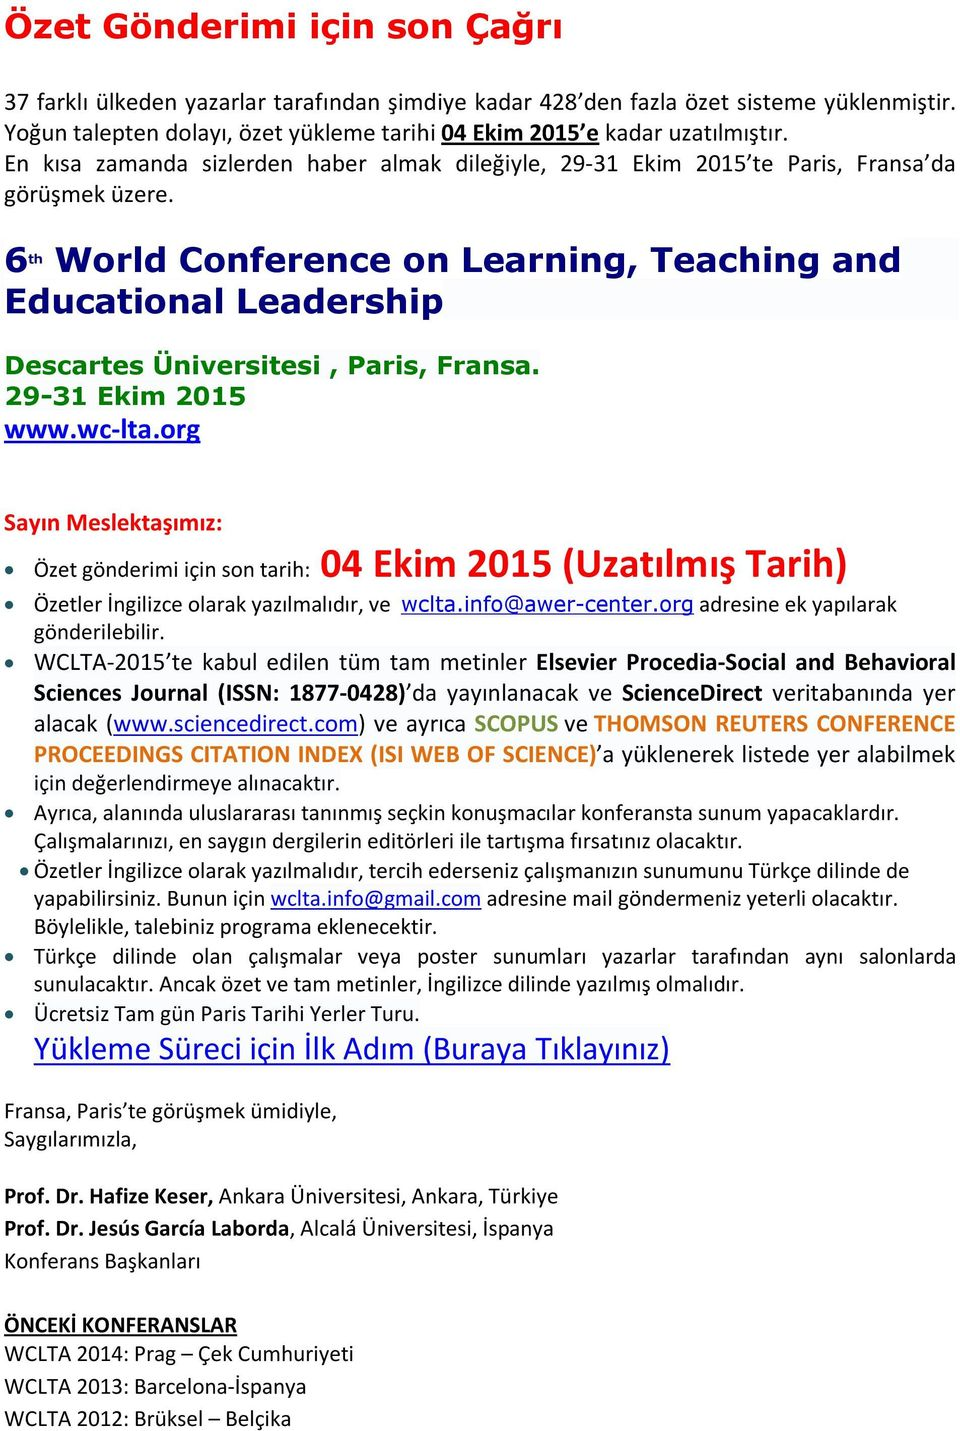 6 th World Conference on Learning, Teaching and Educational Leadership Descartes Üniversitesi, Paris, Fransa. 29-31 Ekim 2015 www.wc-lta.